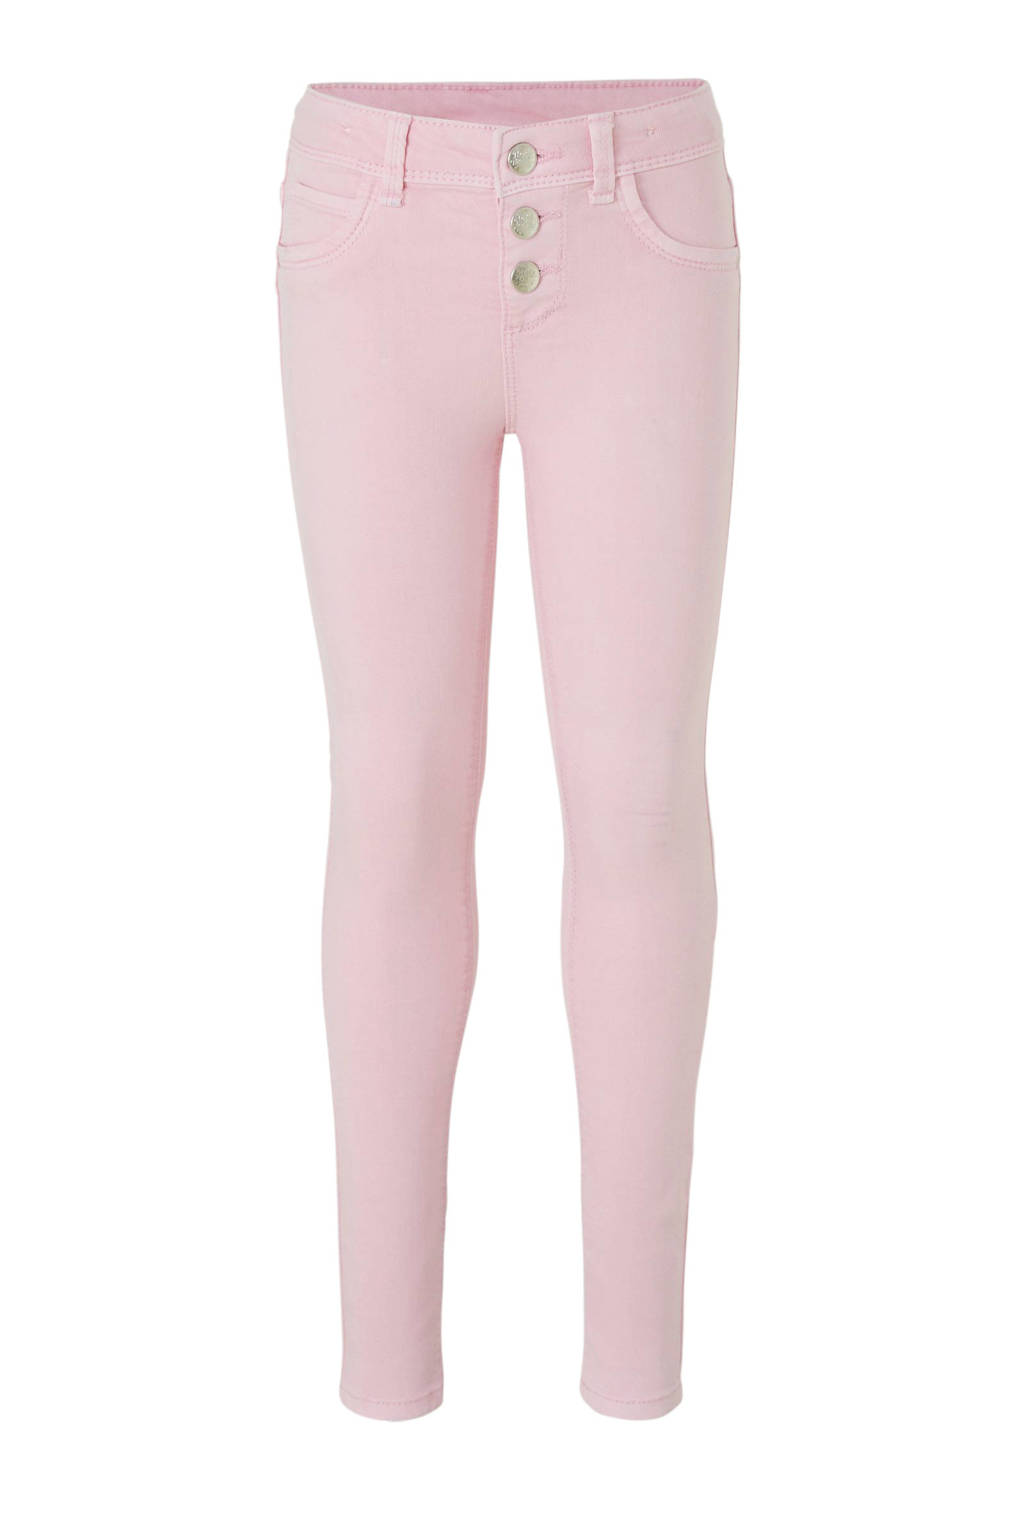 C&A Here & There skinny fit tregging roze, Roze